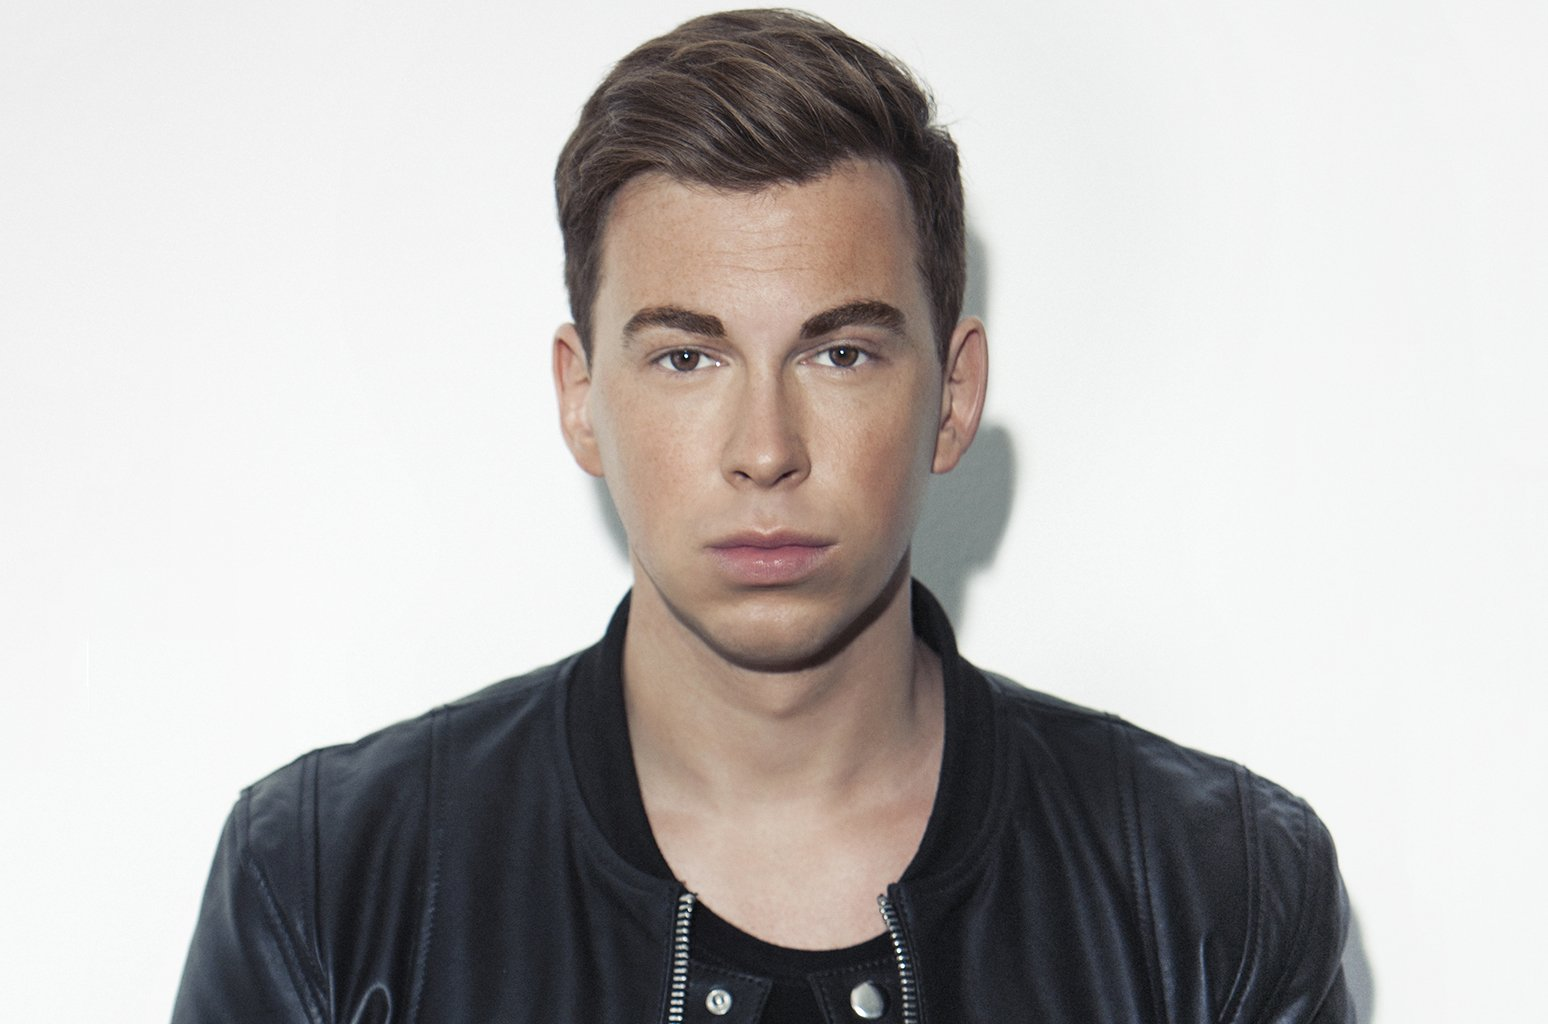 .@Hardwell, @VINAI and @CamMeekins dance their way 'Out Of This Town' (listen) https://t.co/ejYYCTvASS https://t.co/WY6SwskXp5